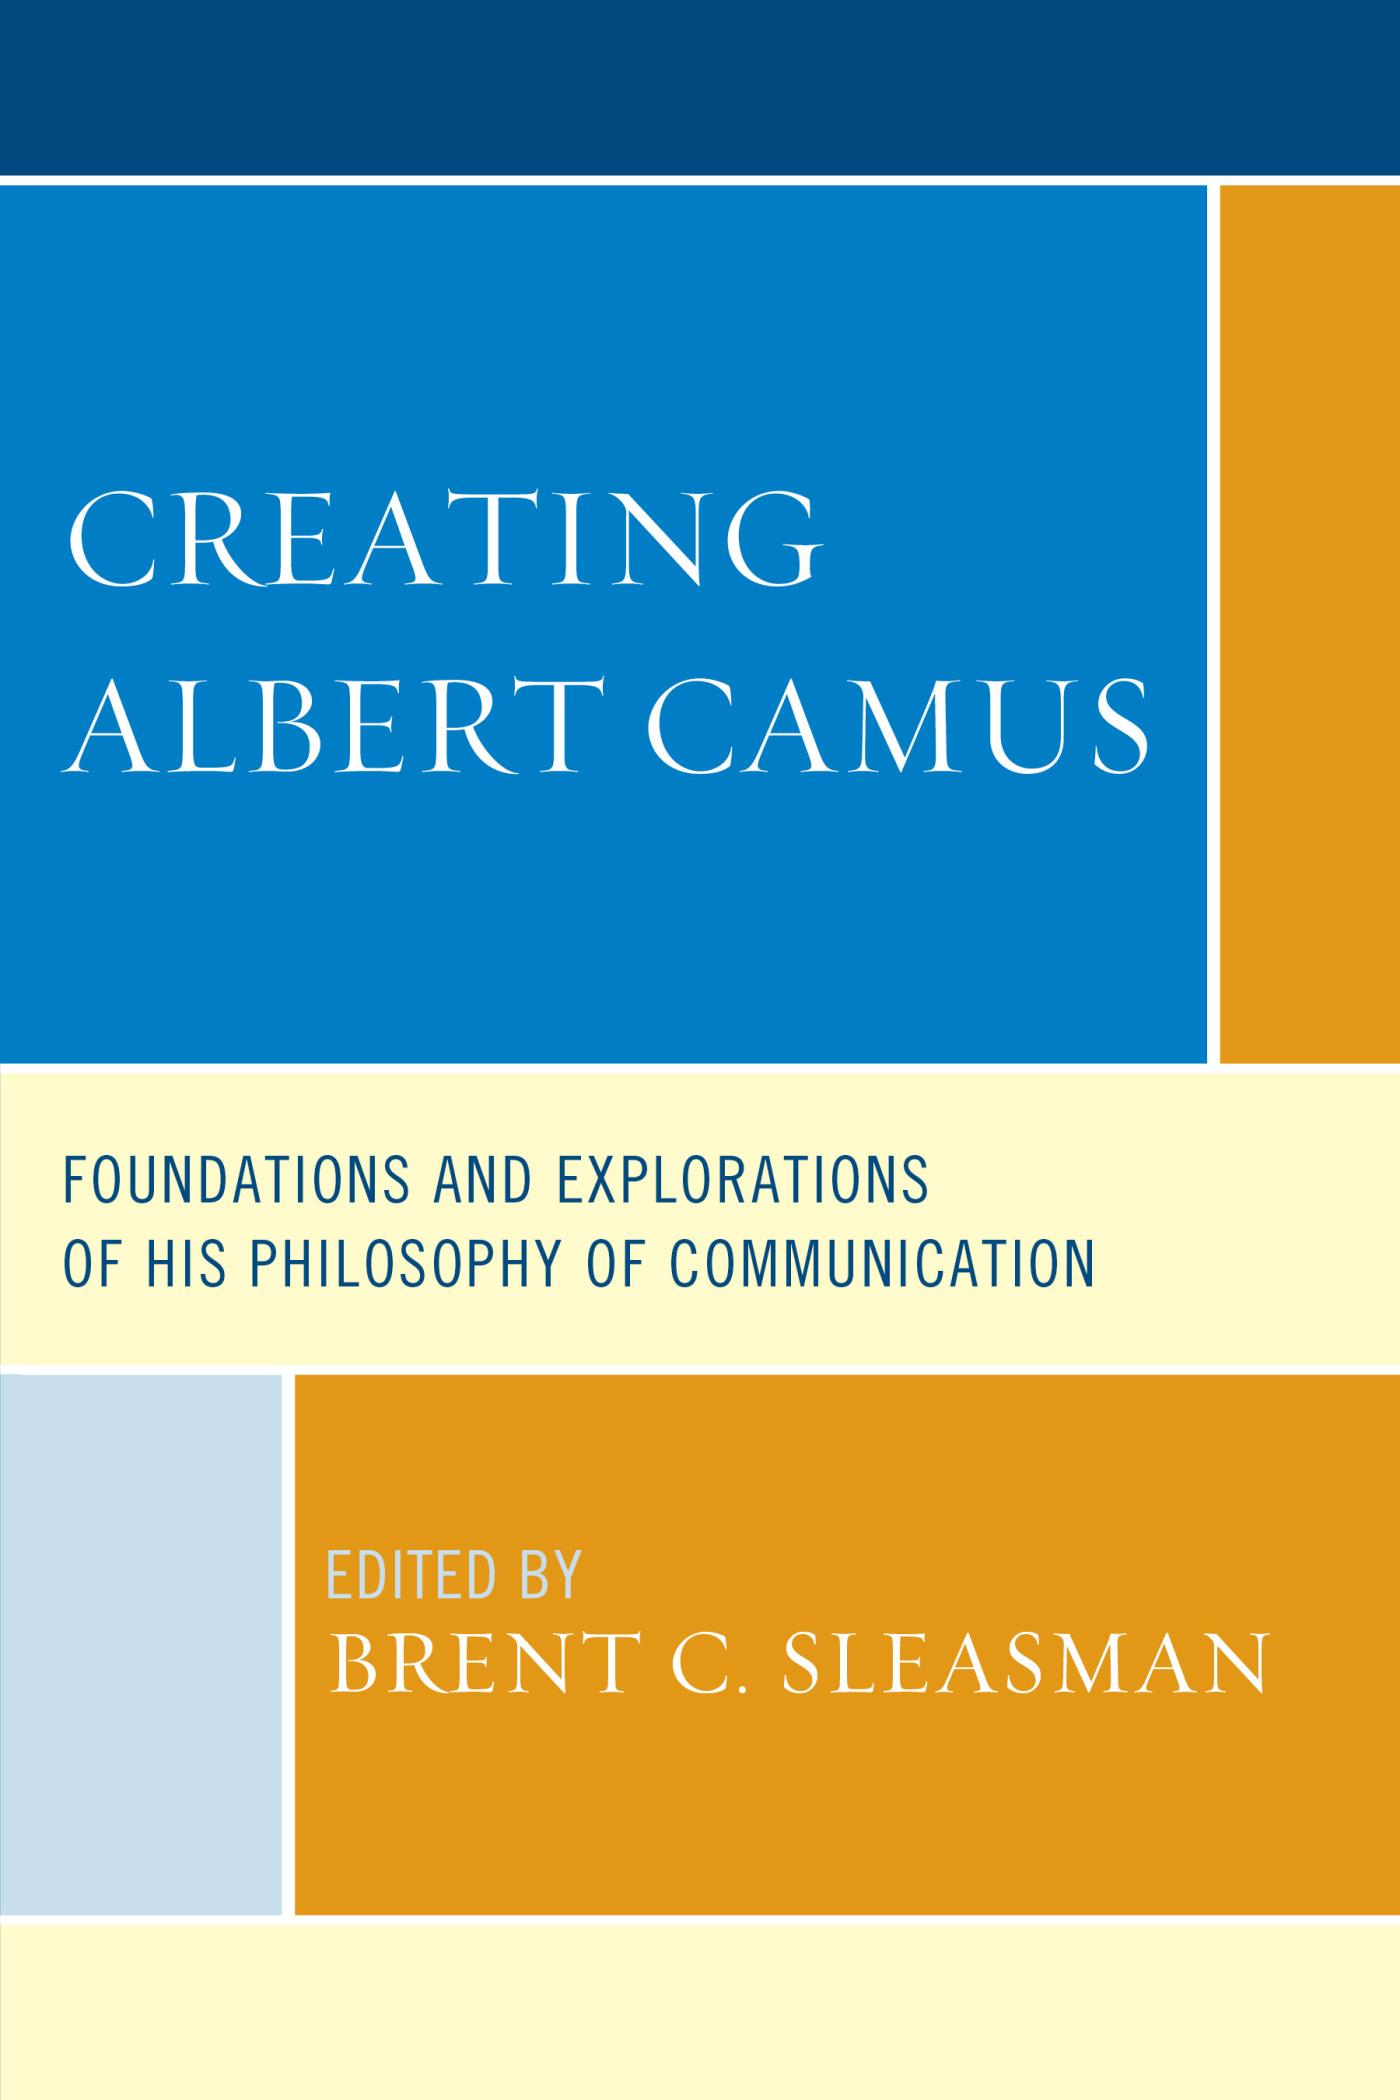 Creating Albert Camus